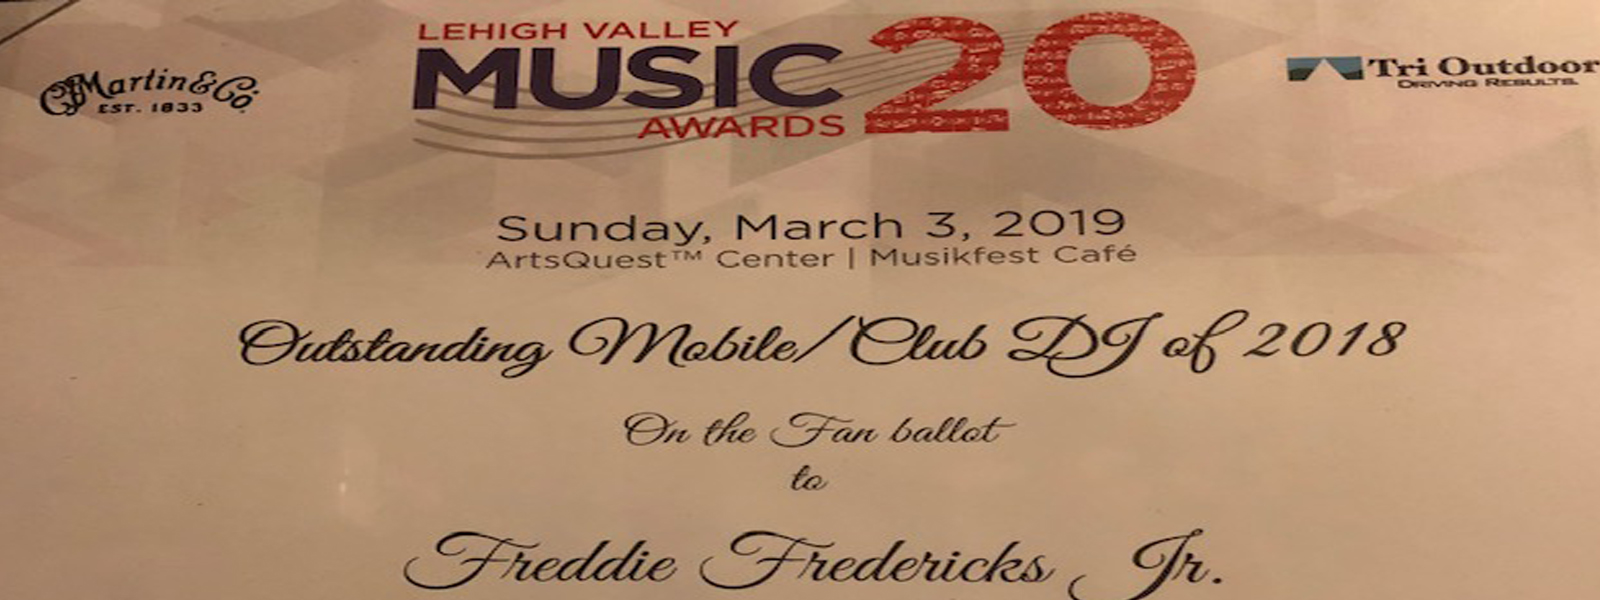 Voted Lehigh Valley's Mobile Club Dj of 2016, 2017 and 2018,